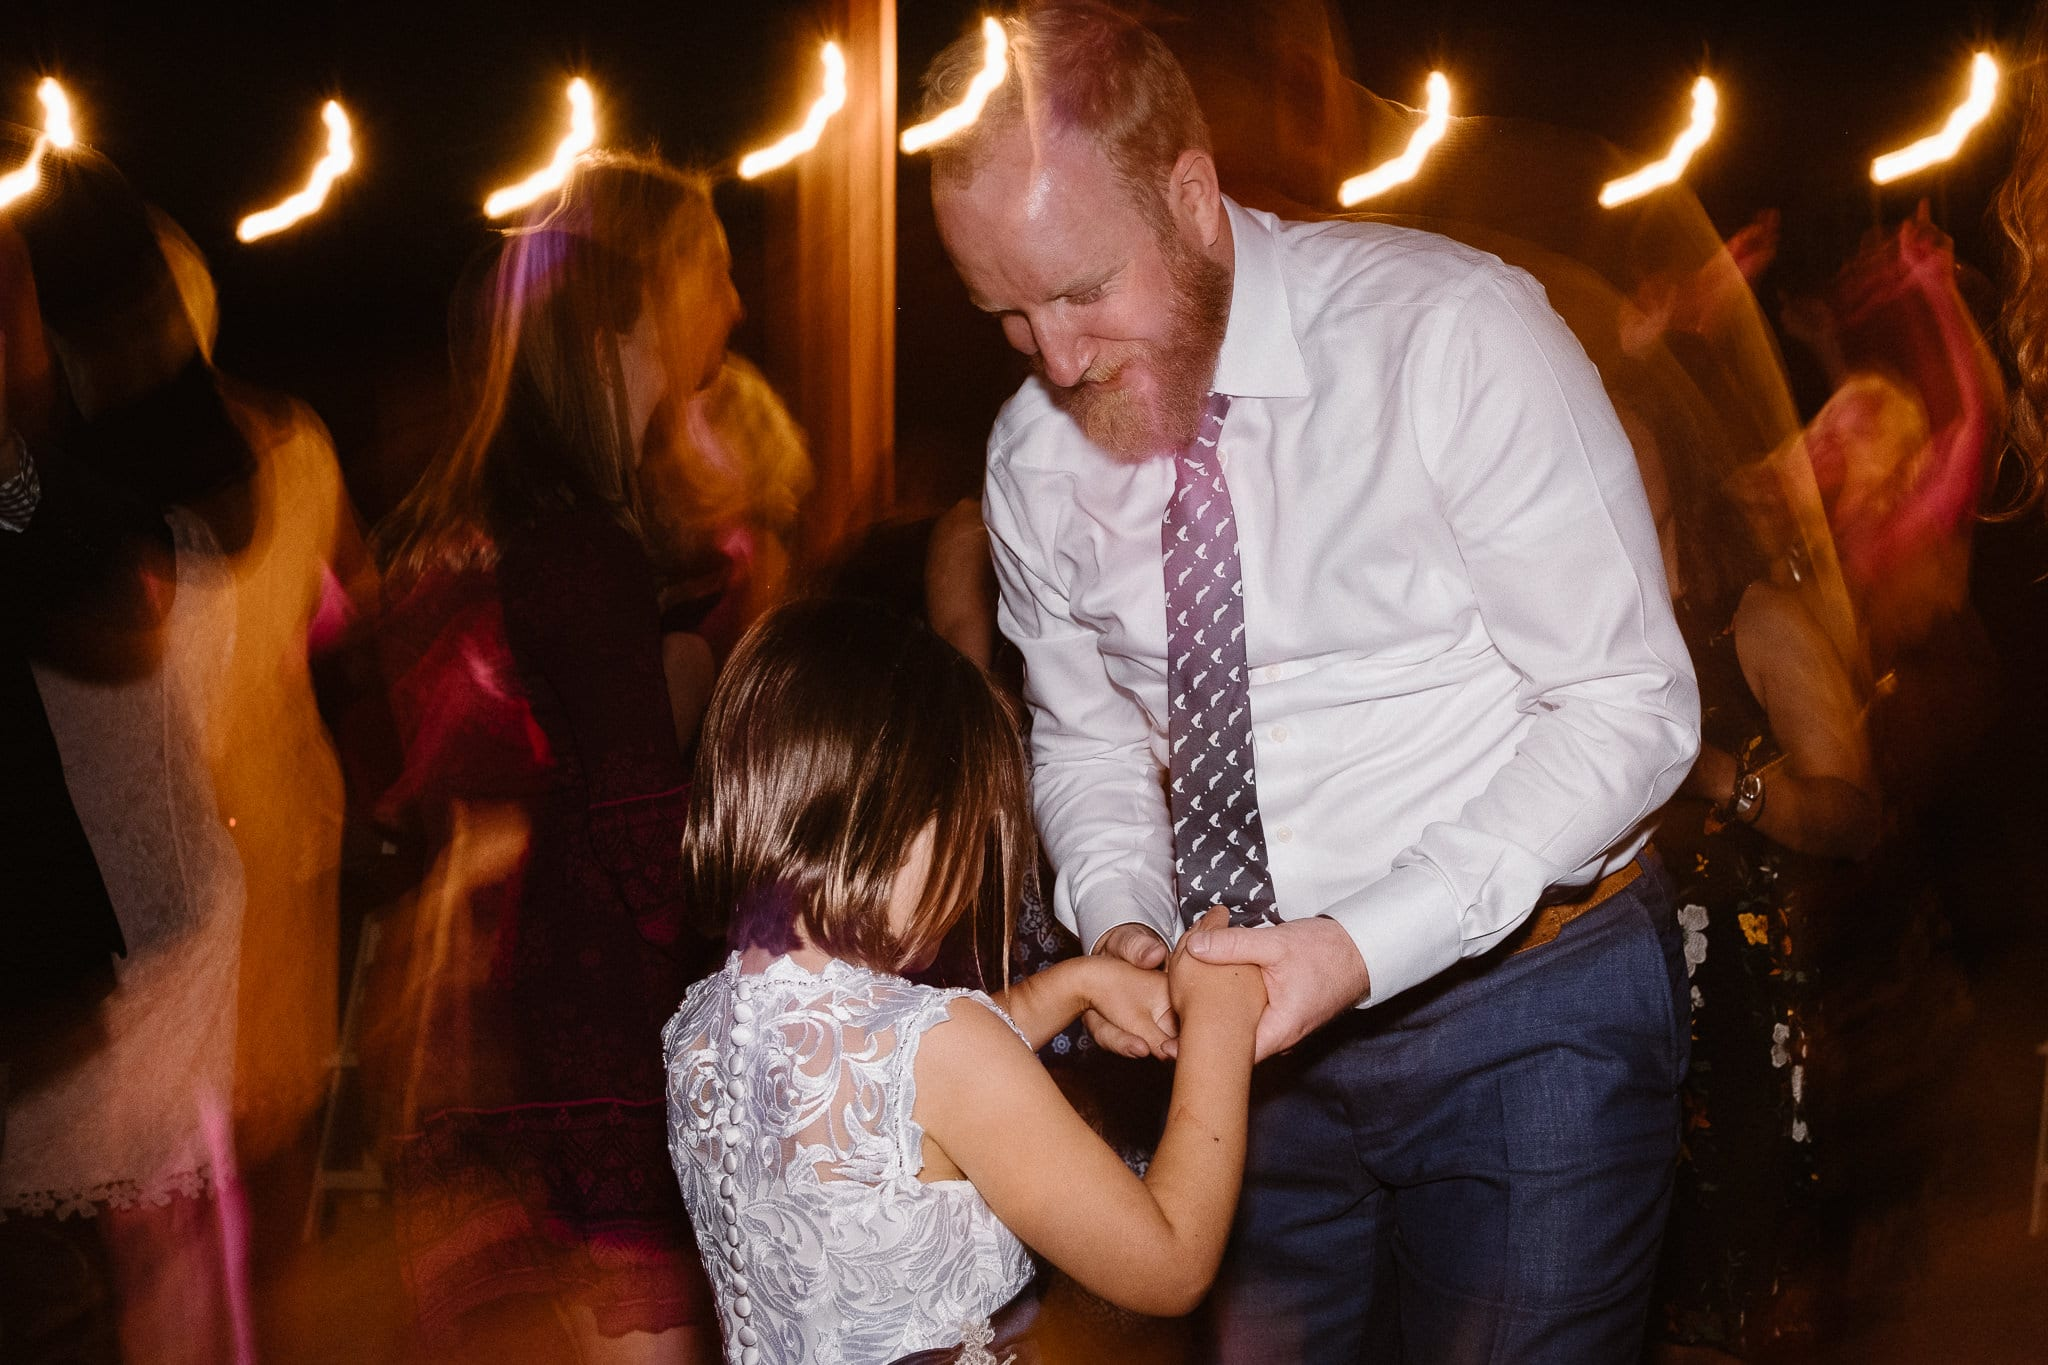 Steamboat Springs wedding photographer, La Joya Dulce wedding, wedding reception dance floor photos